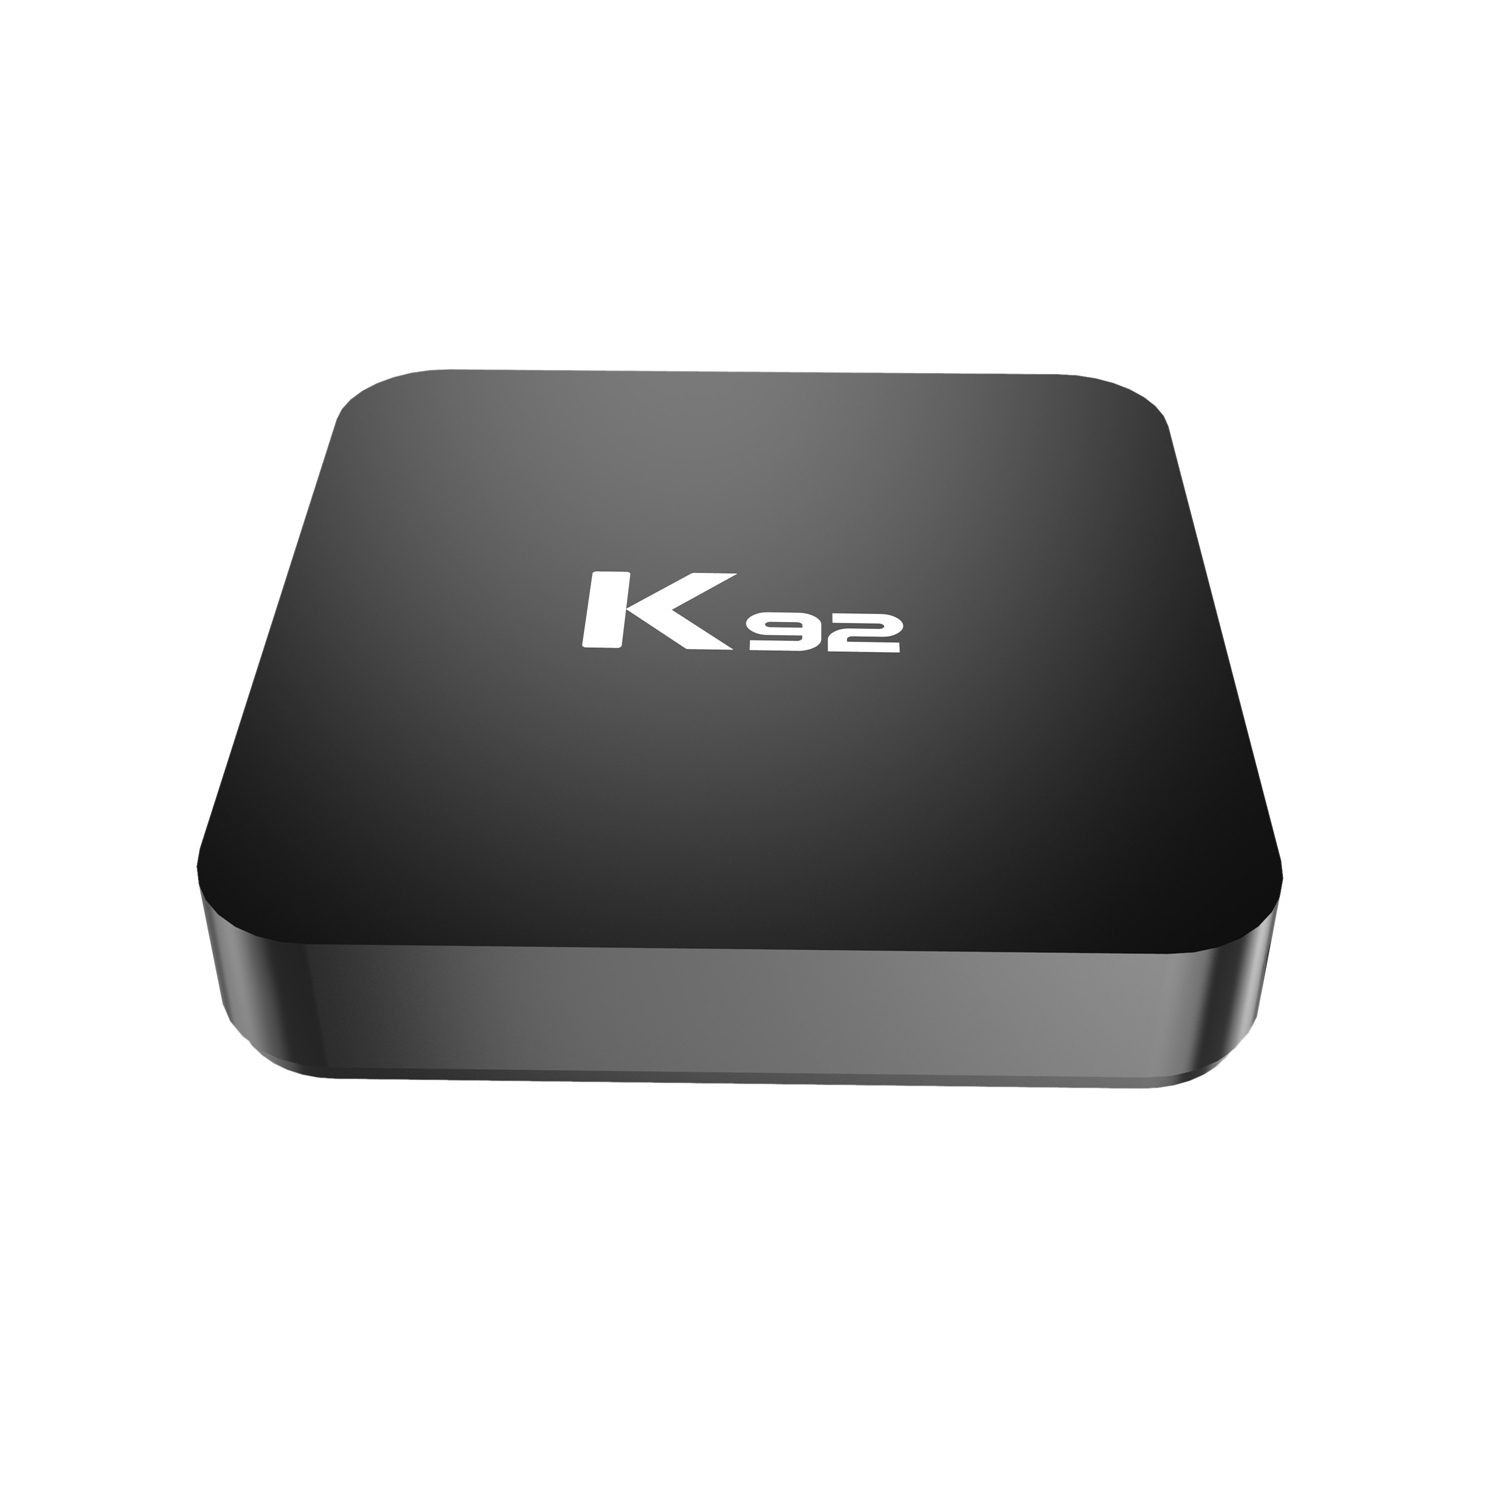 IG-K92 S905X2 Android 8,1 Smart TV Box 4 Гб RAM 2,4G/5G WiFi Bluetooth 4,1 телеприставка image